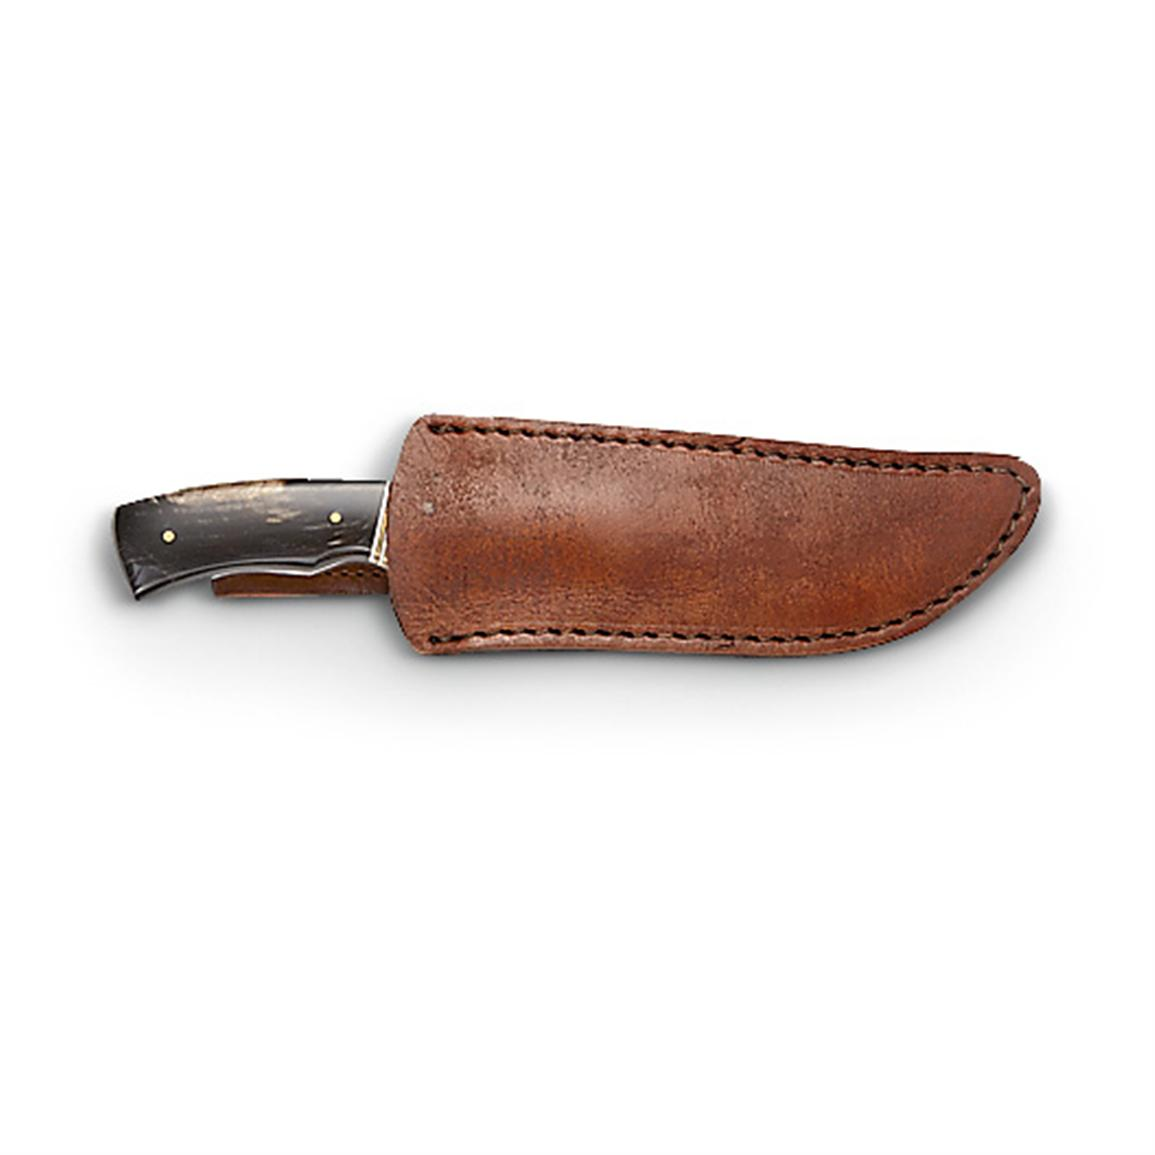 Genuine leather sheath